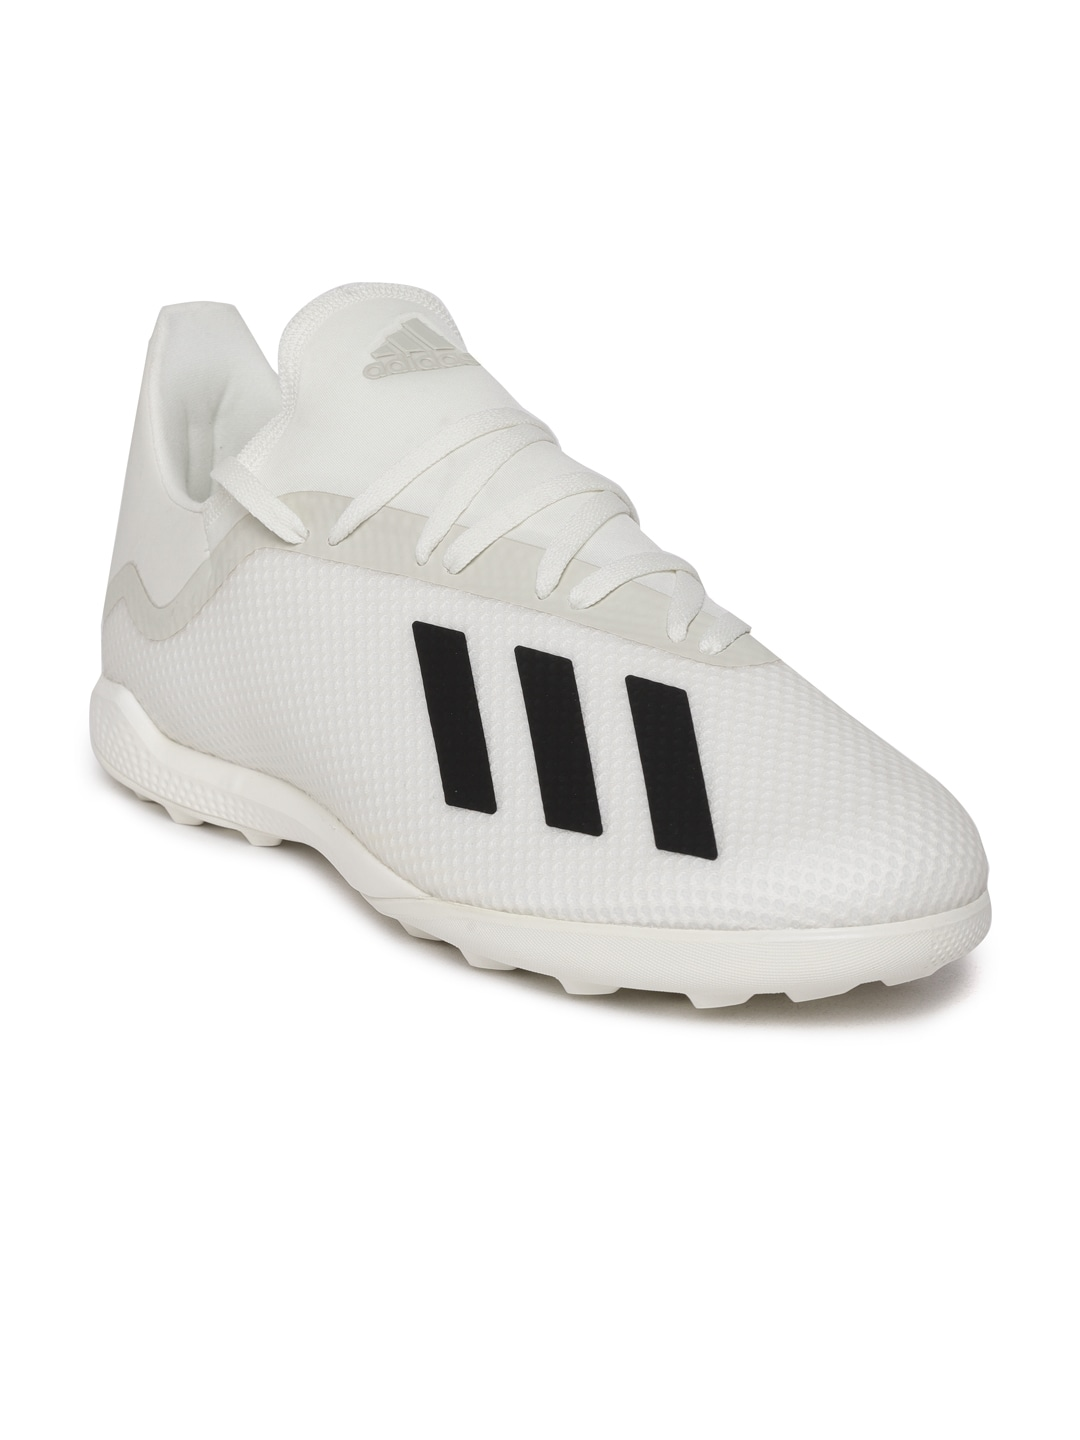 2e869f1afc325 Adidas Men White Red Sport Shoes - Buy Adidas Men White Red Sport Shoes  online in India